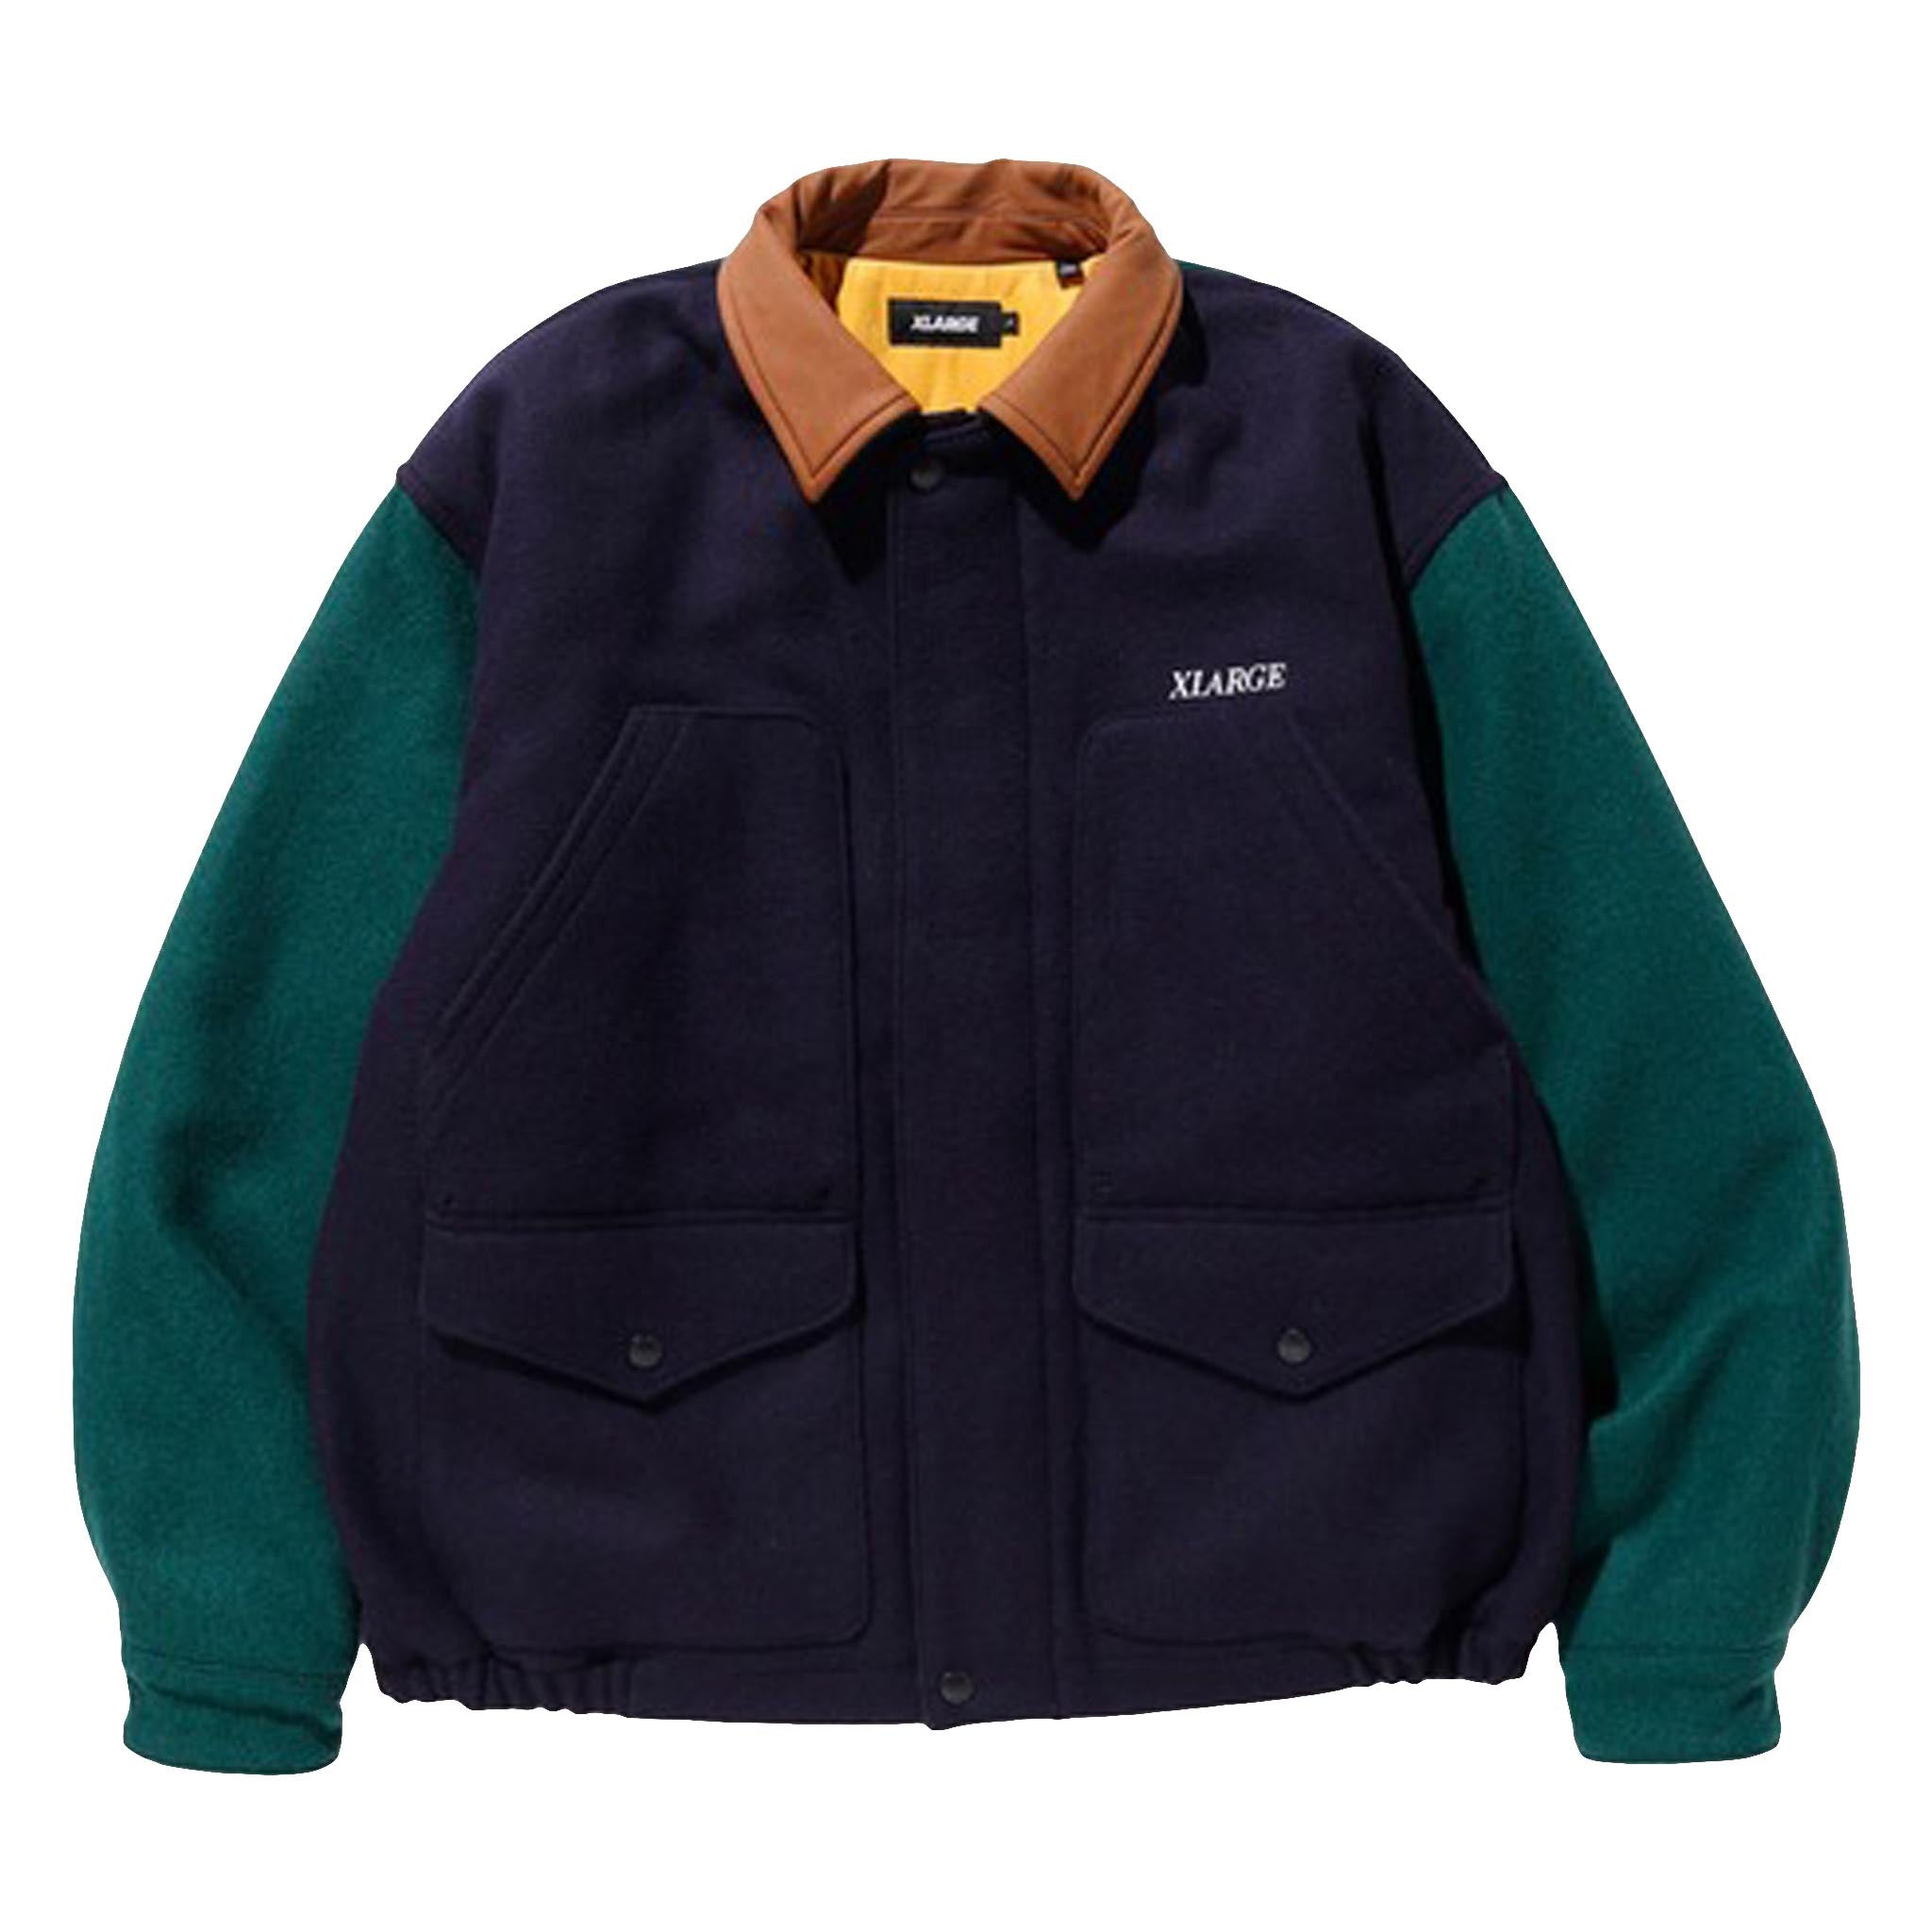 XLARGE Wool Work Jacket Navy